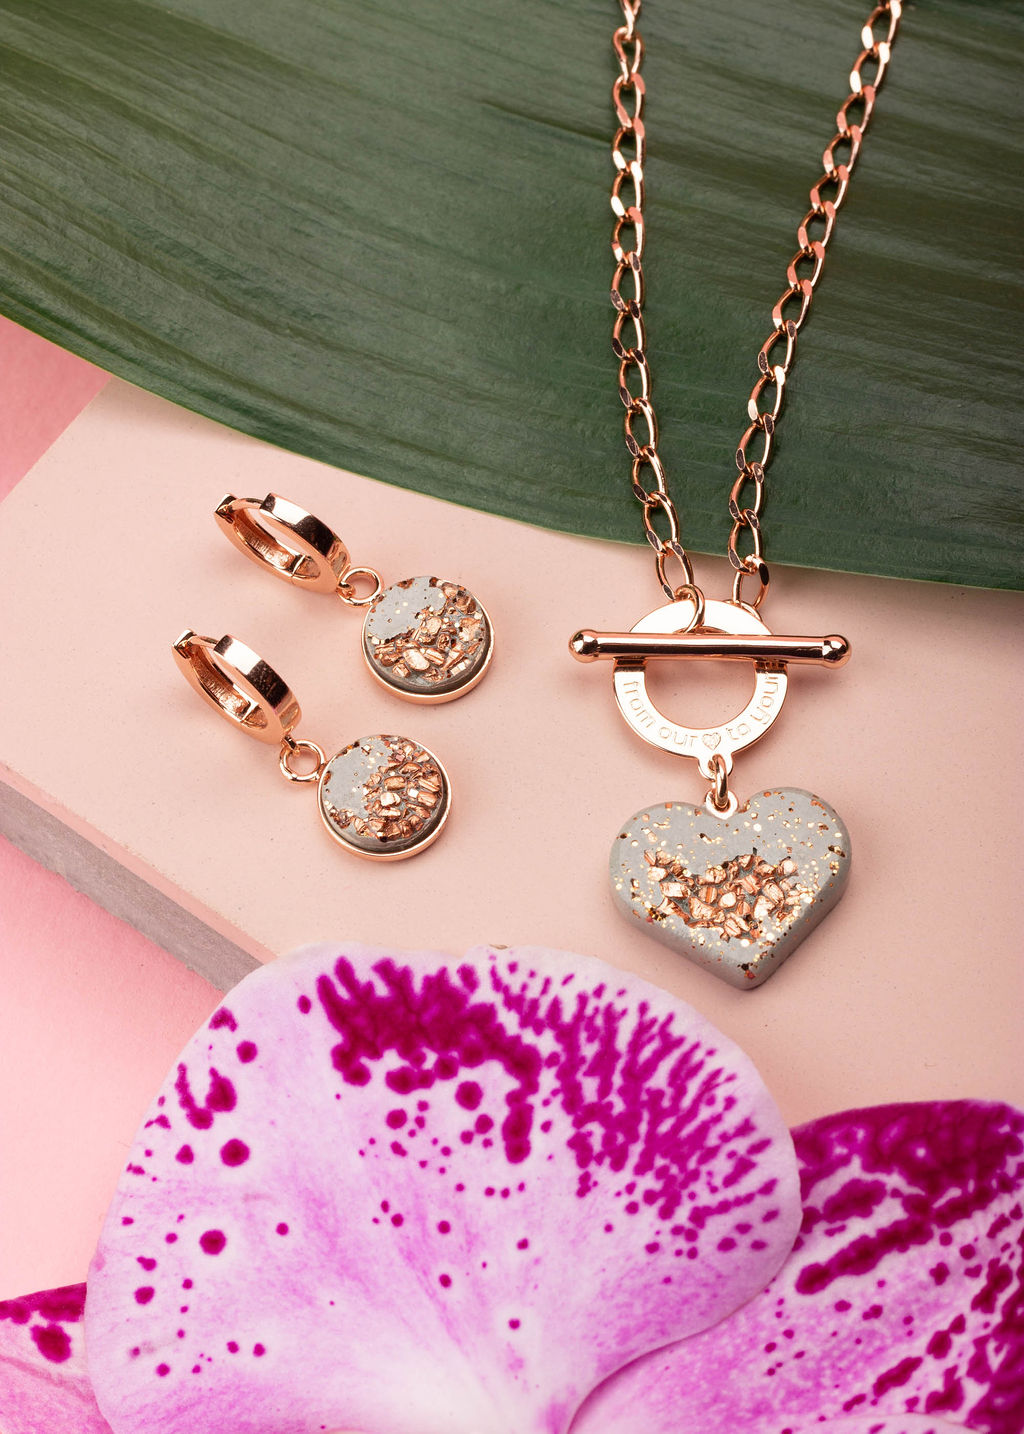 Styled Jewelry Photography